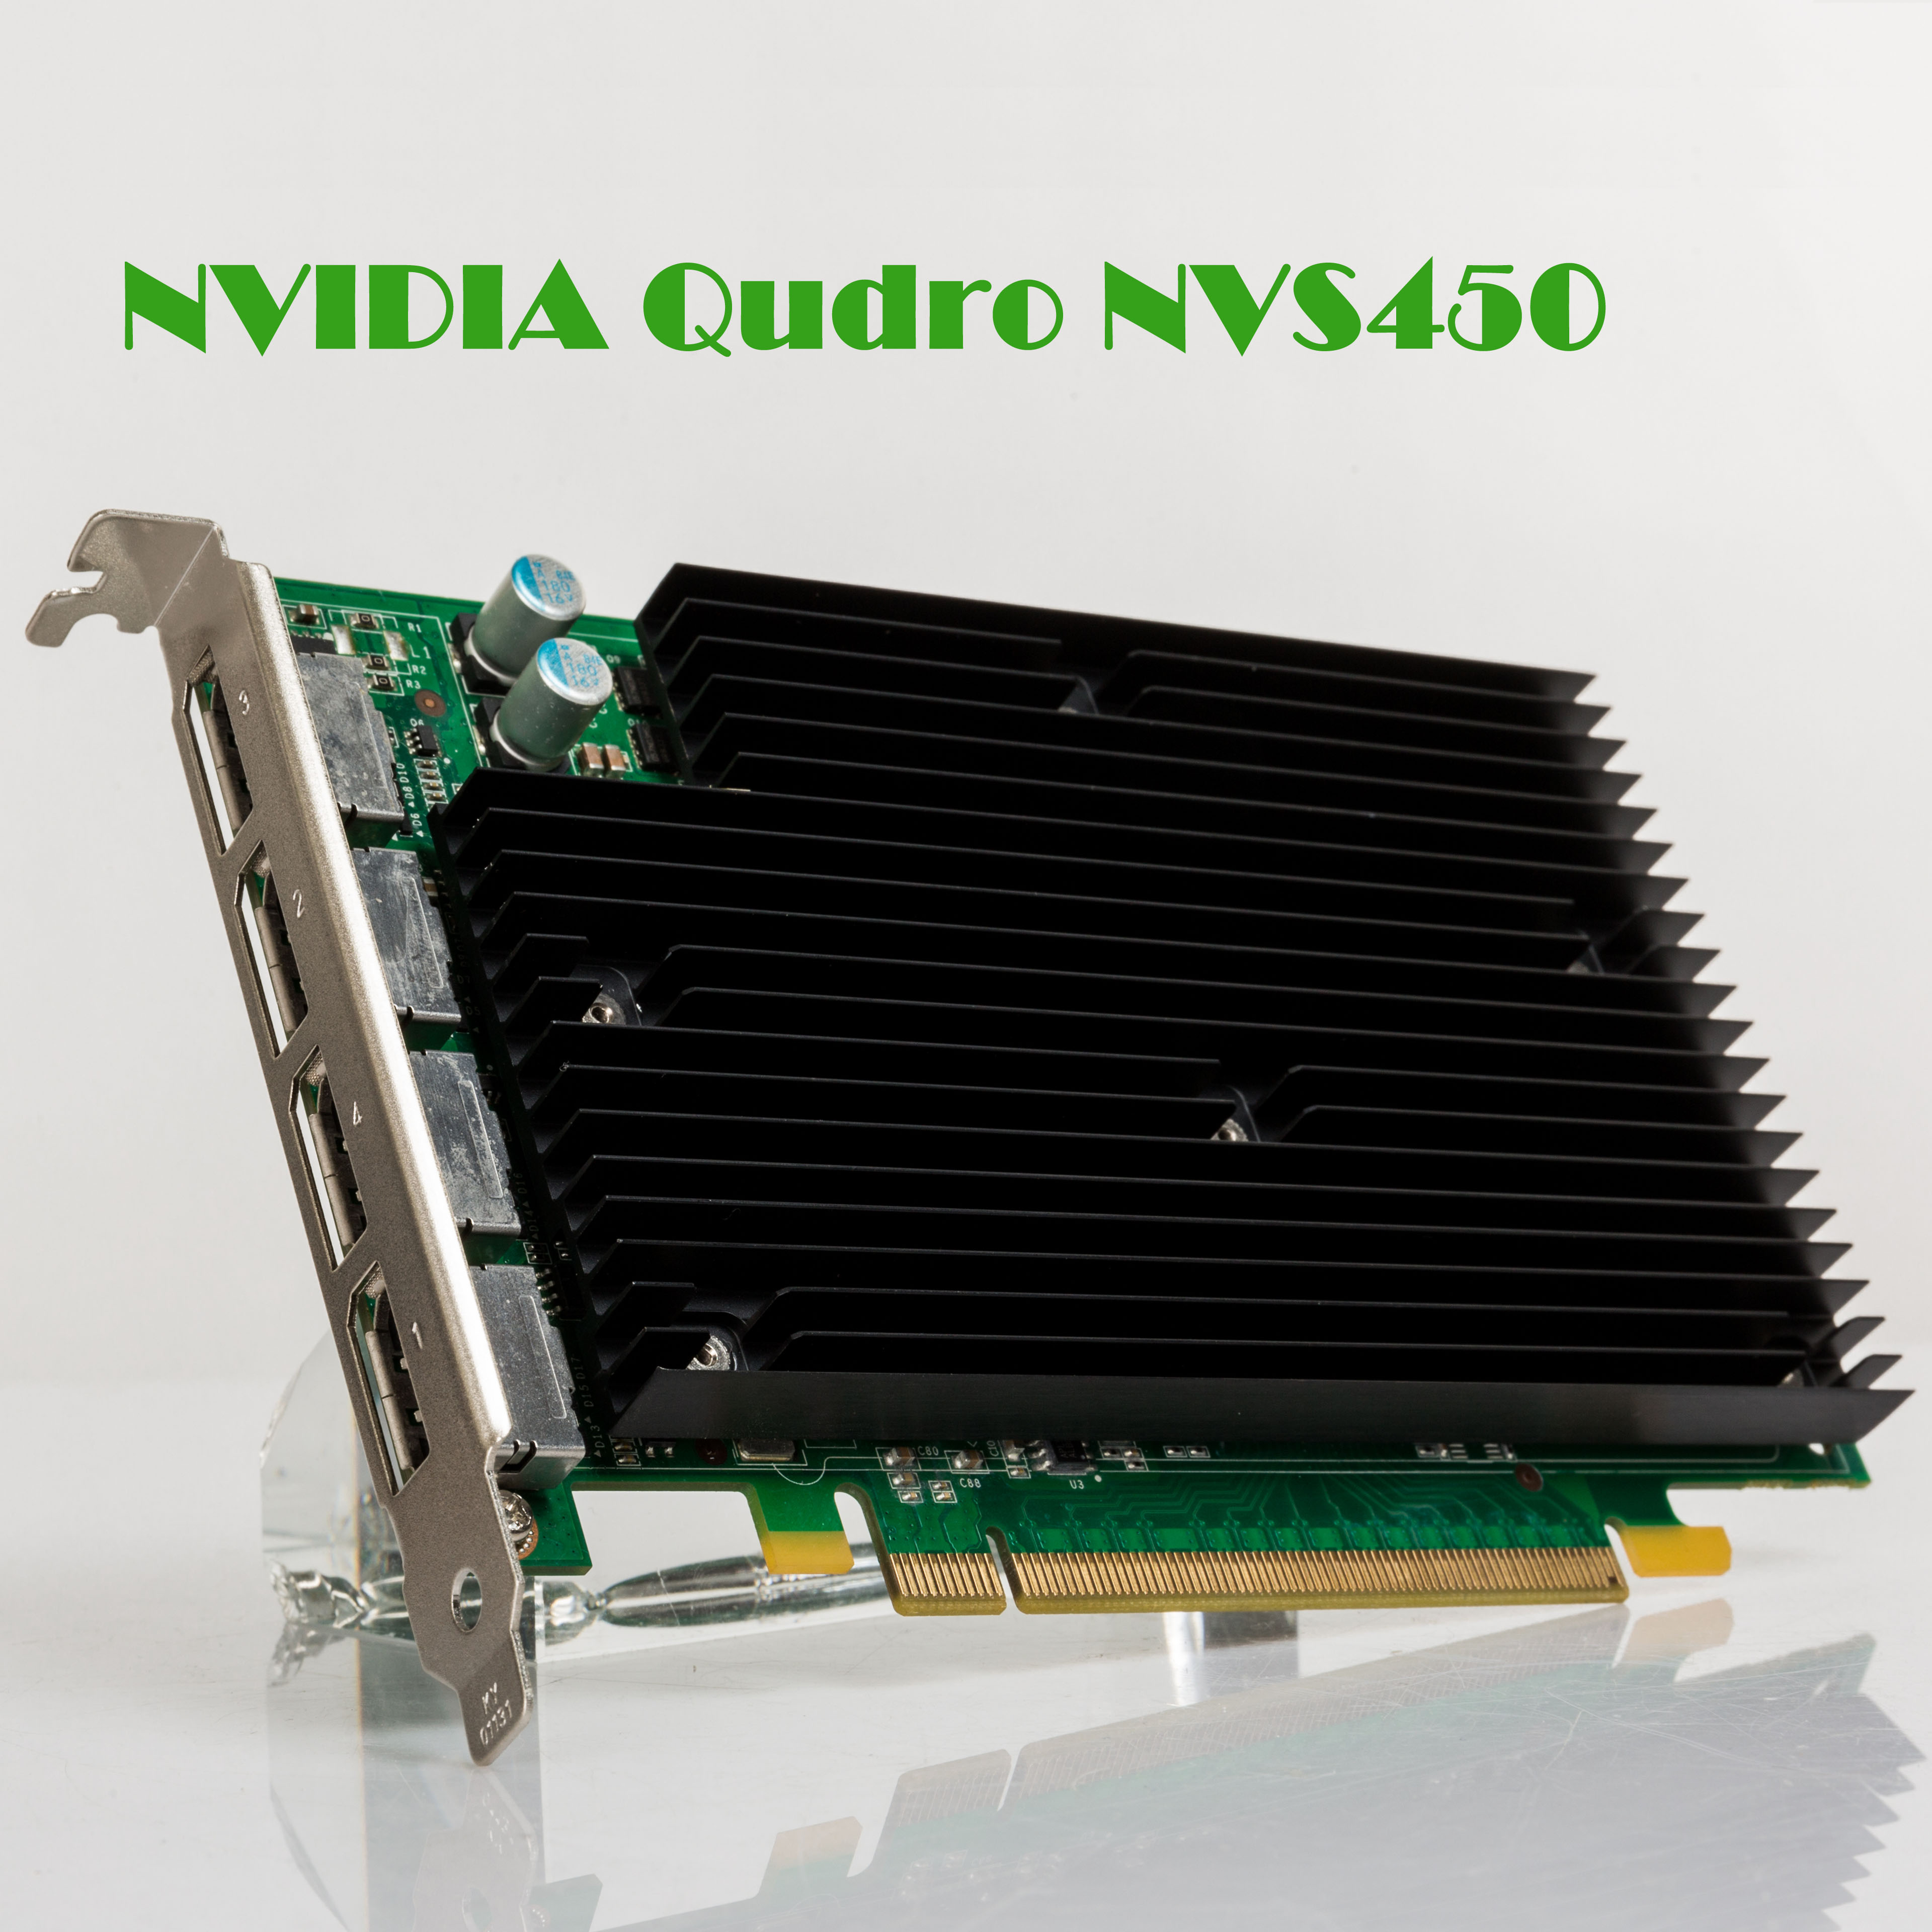 Used 90%new NVS450 Y413P N217R 4-screen Graphics Card Warranty 1 Year Used-Like New